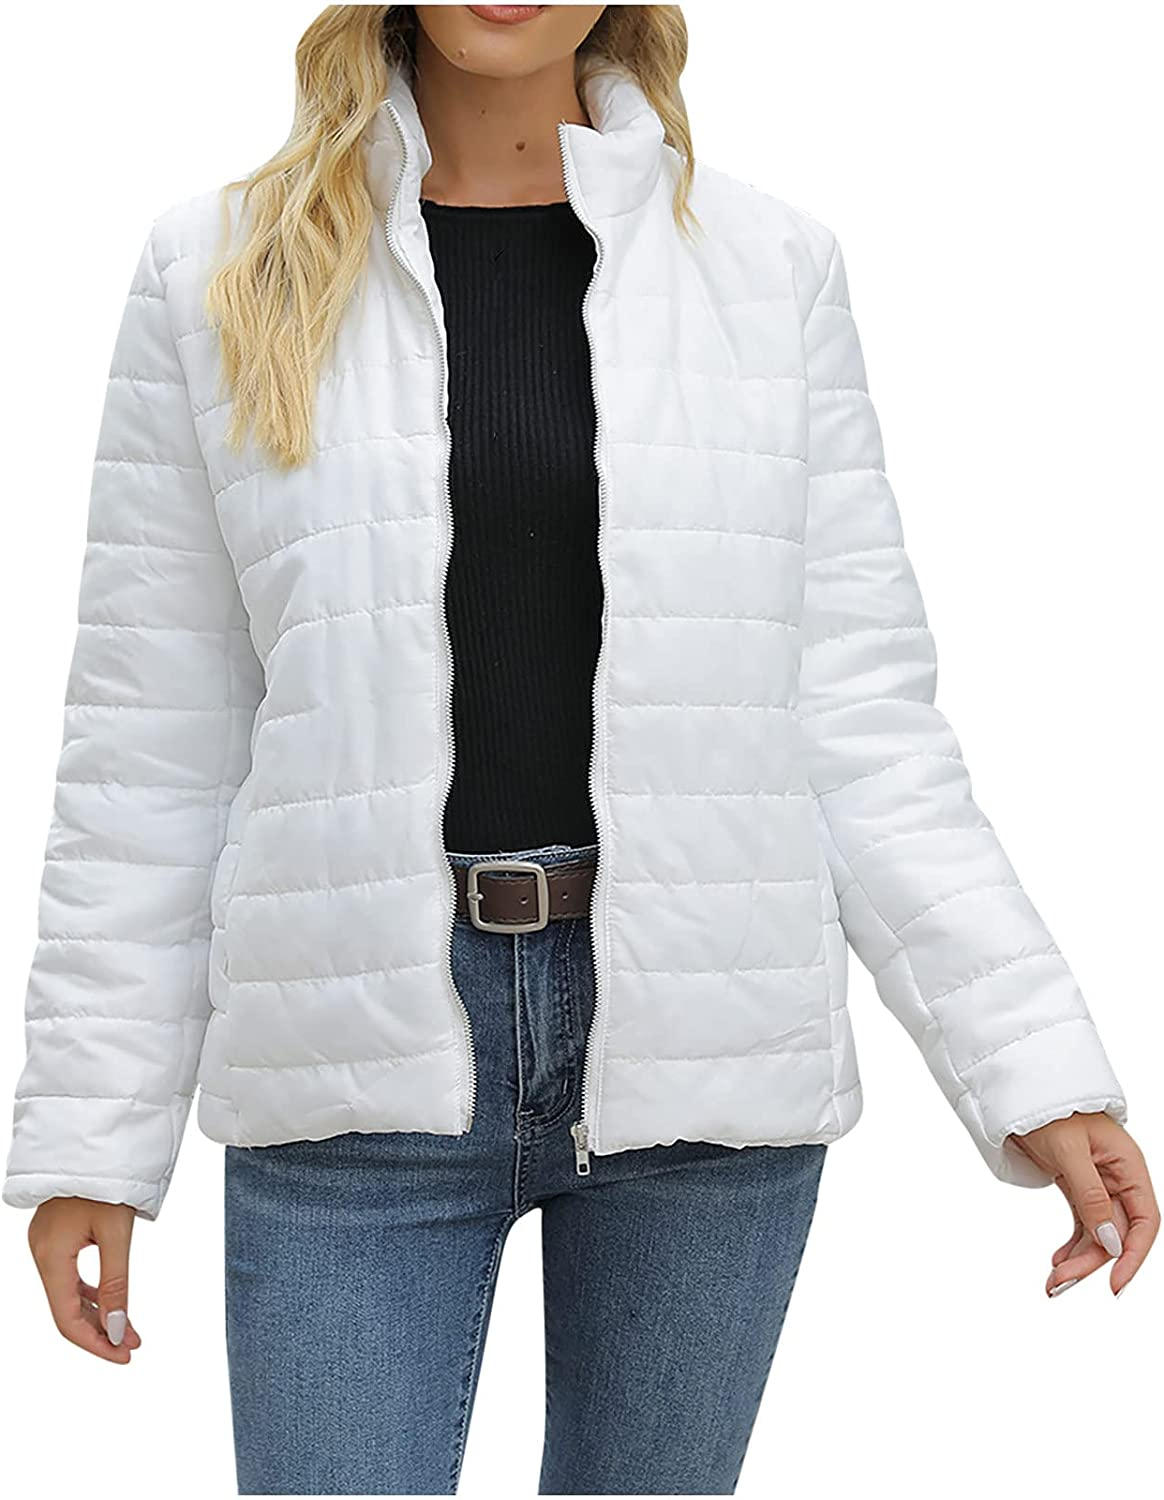 Clearance!! Coat Jacket Women's Casual Solid Jacket Outdoor Plus Size Hooded Windproof Loose Coat